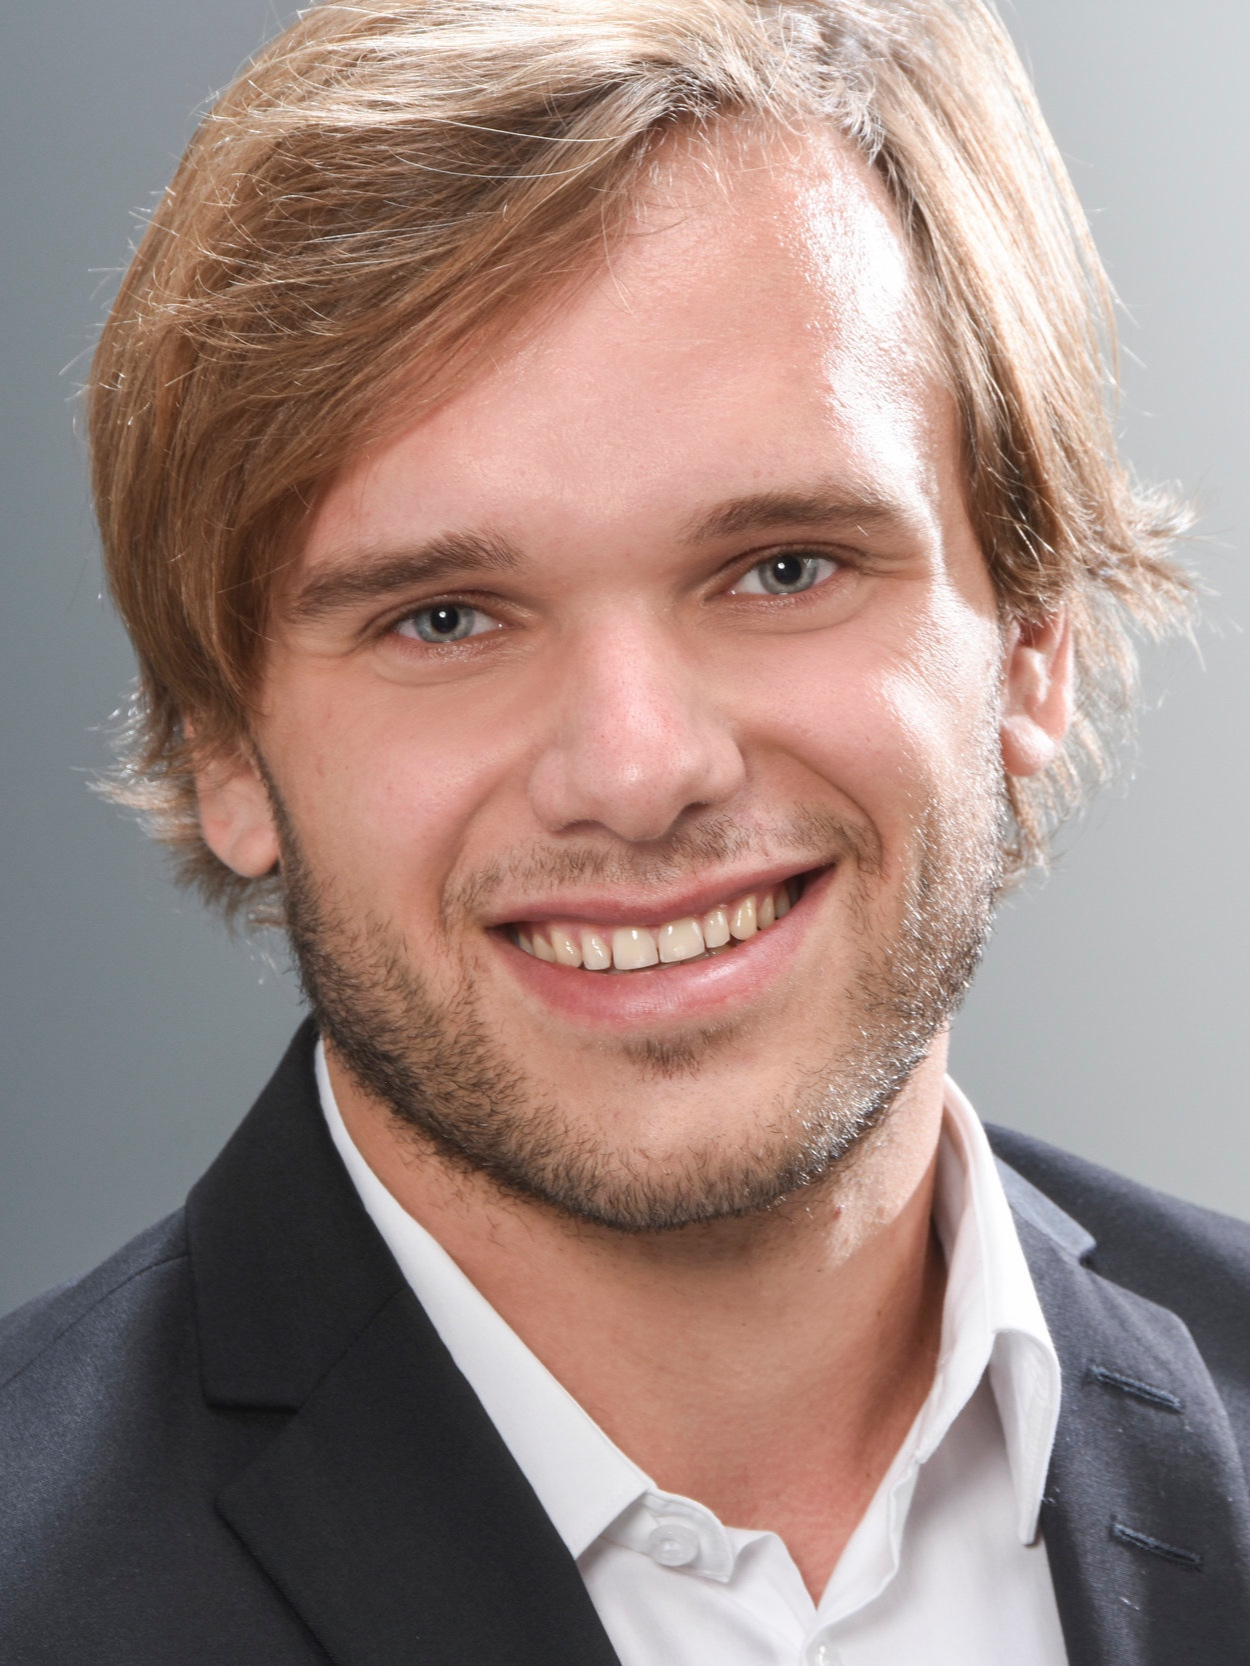 Moritz Osterhuber - Chief Research Officer